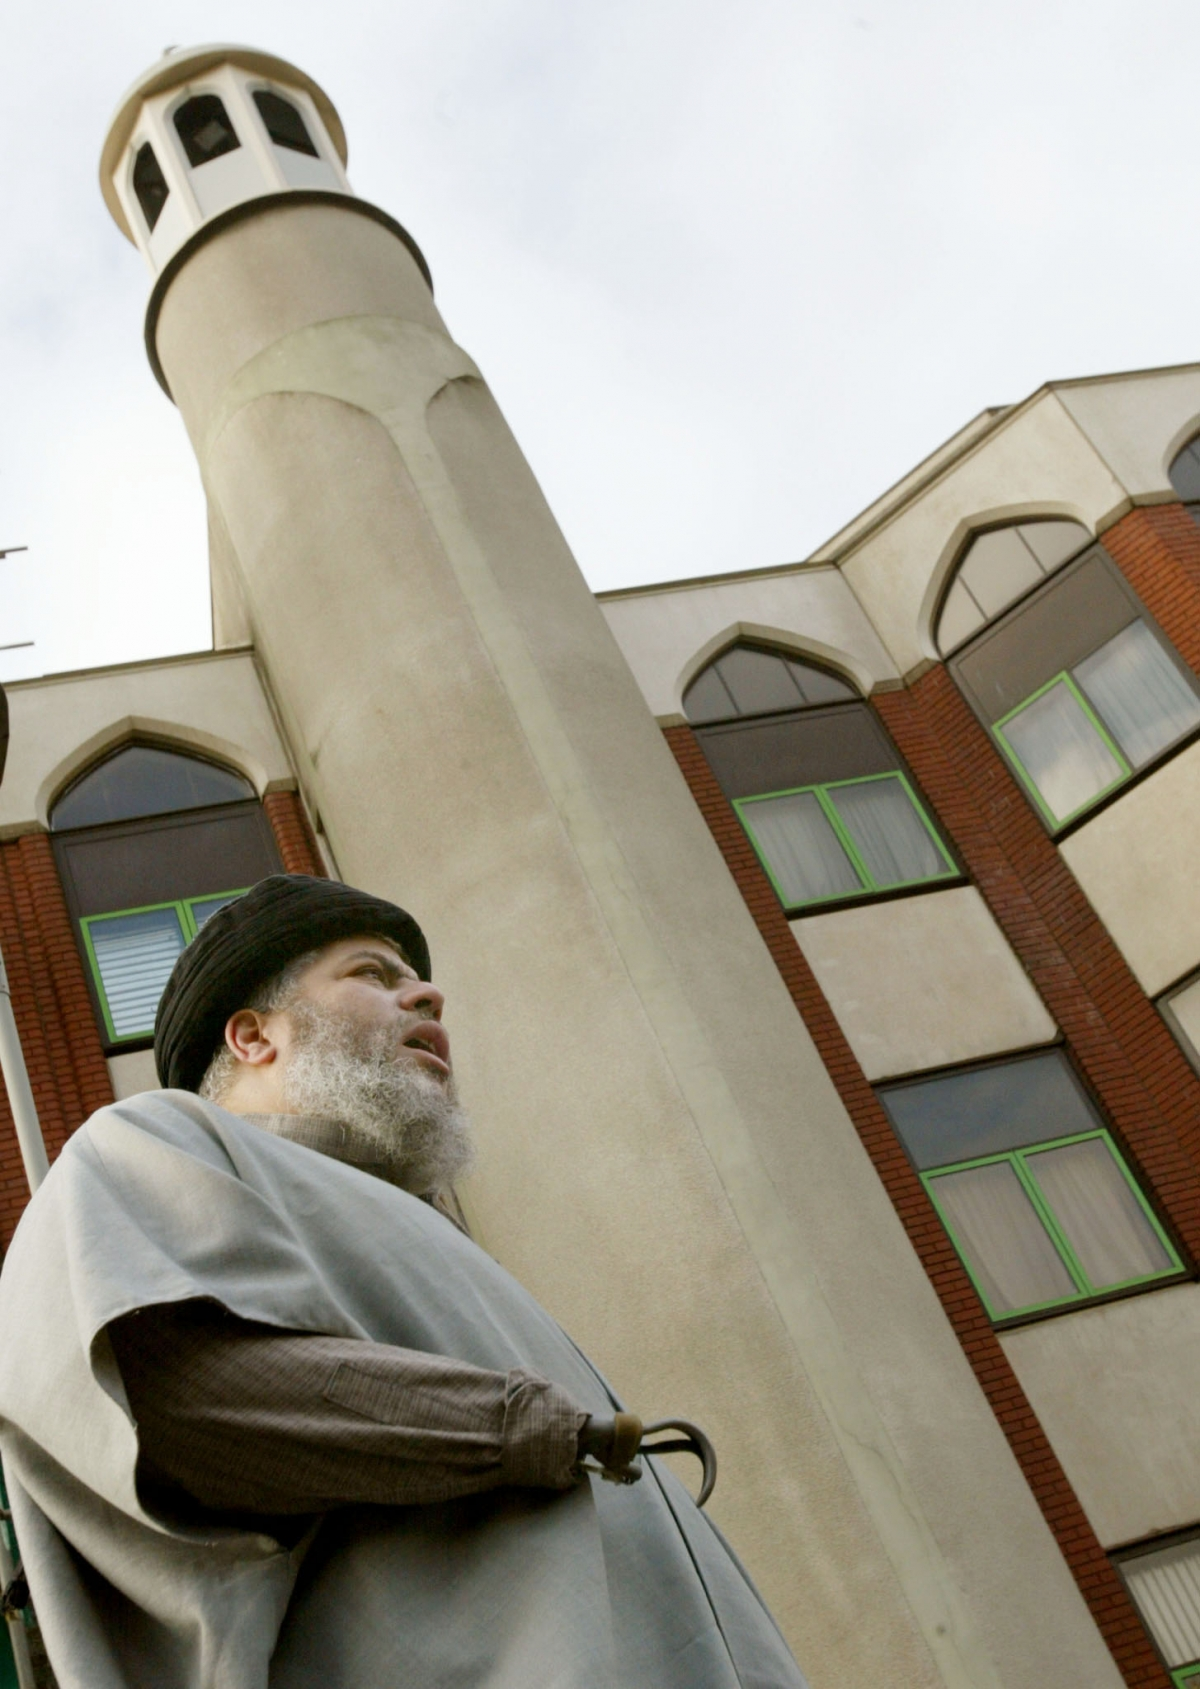 Muslim cleric,Abu Hamza al-Masri, leads prayers outside the North London Central Mosque, in the